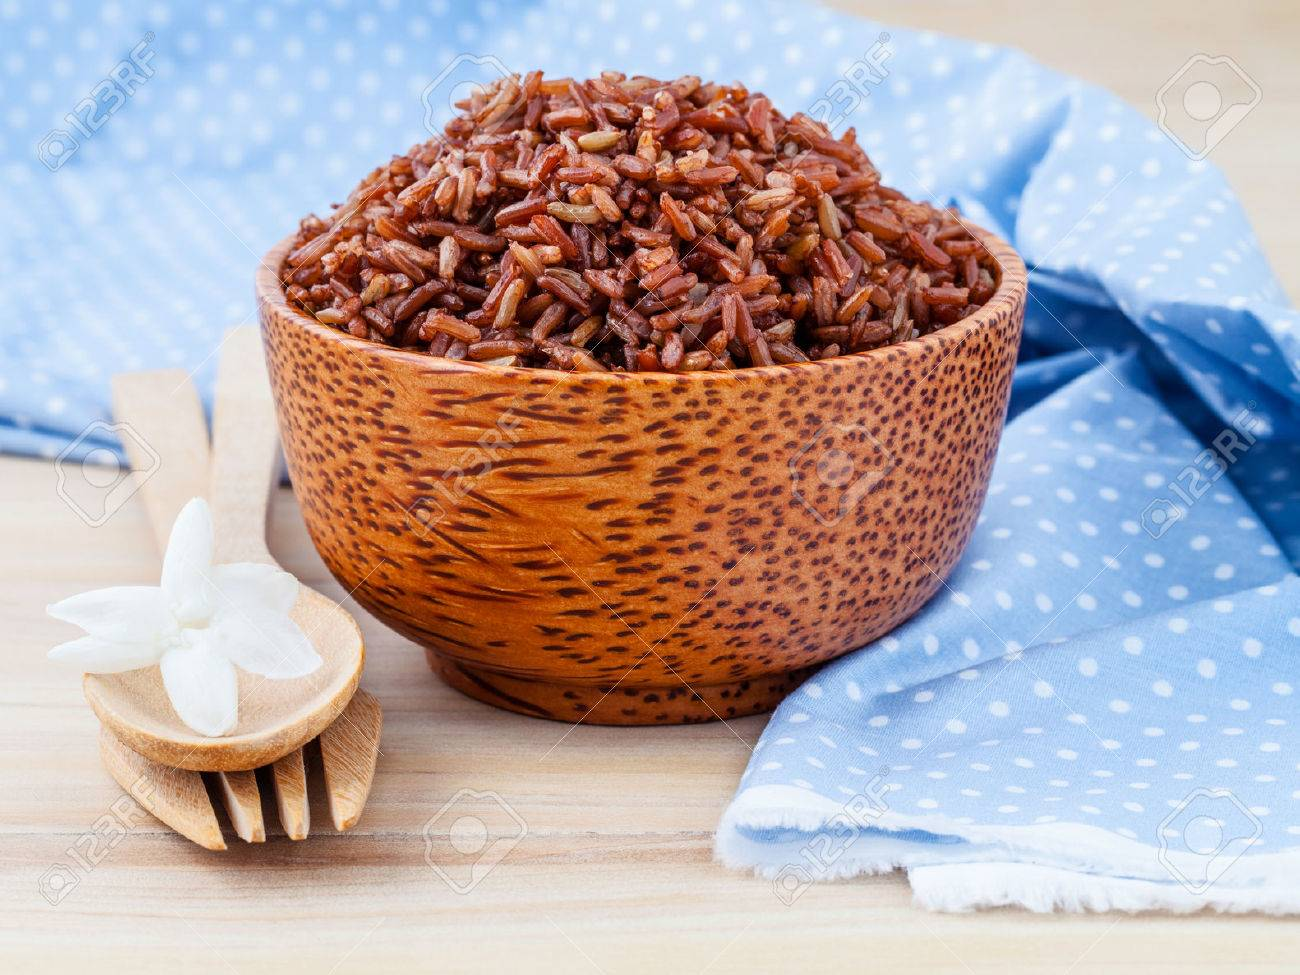 Steamed whole grain traditional thai rice best rice for healthy and clean food on wooden background - 46977671